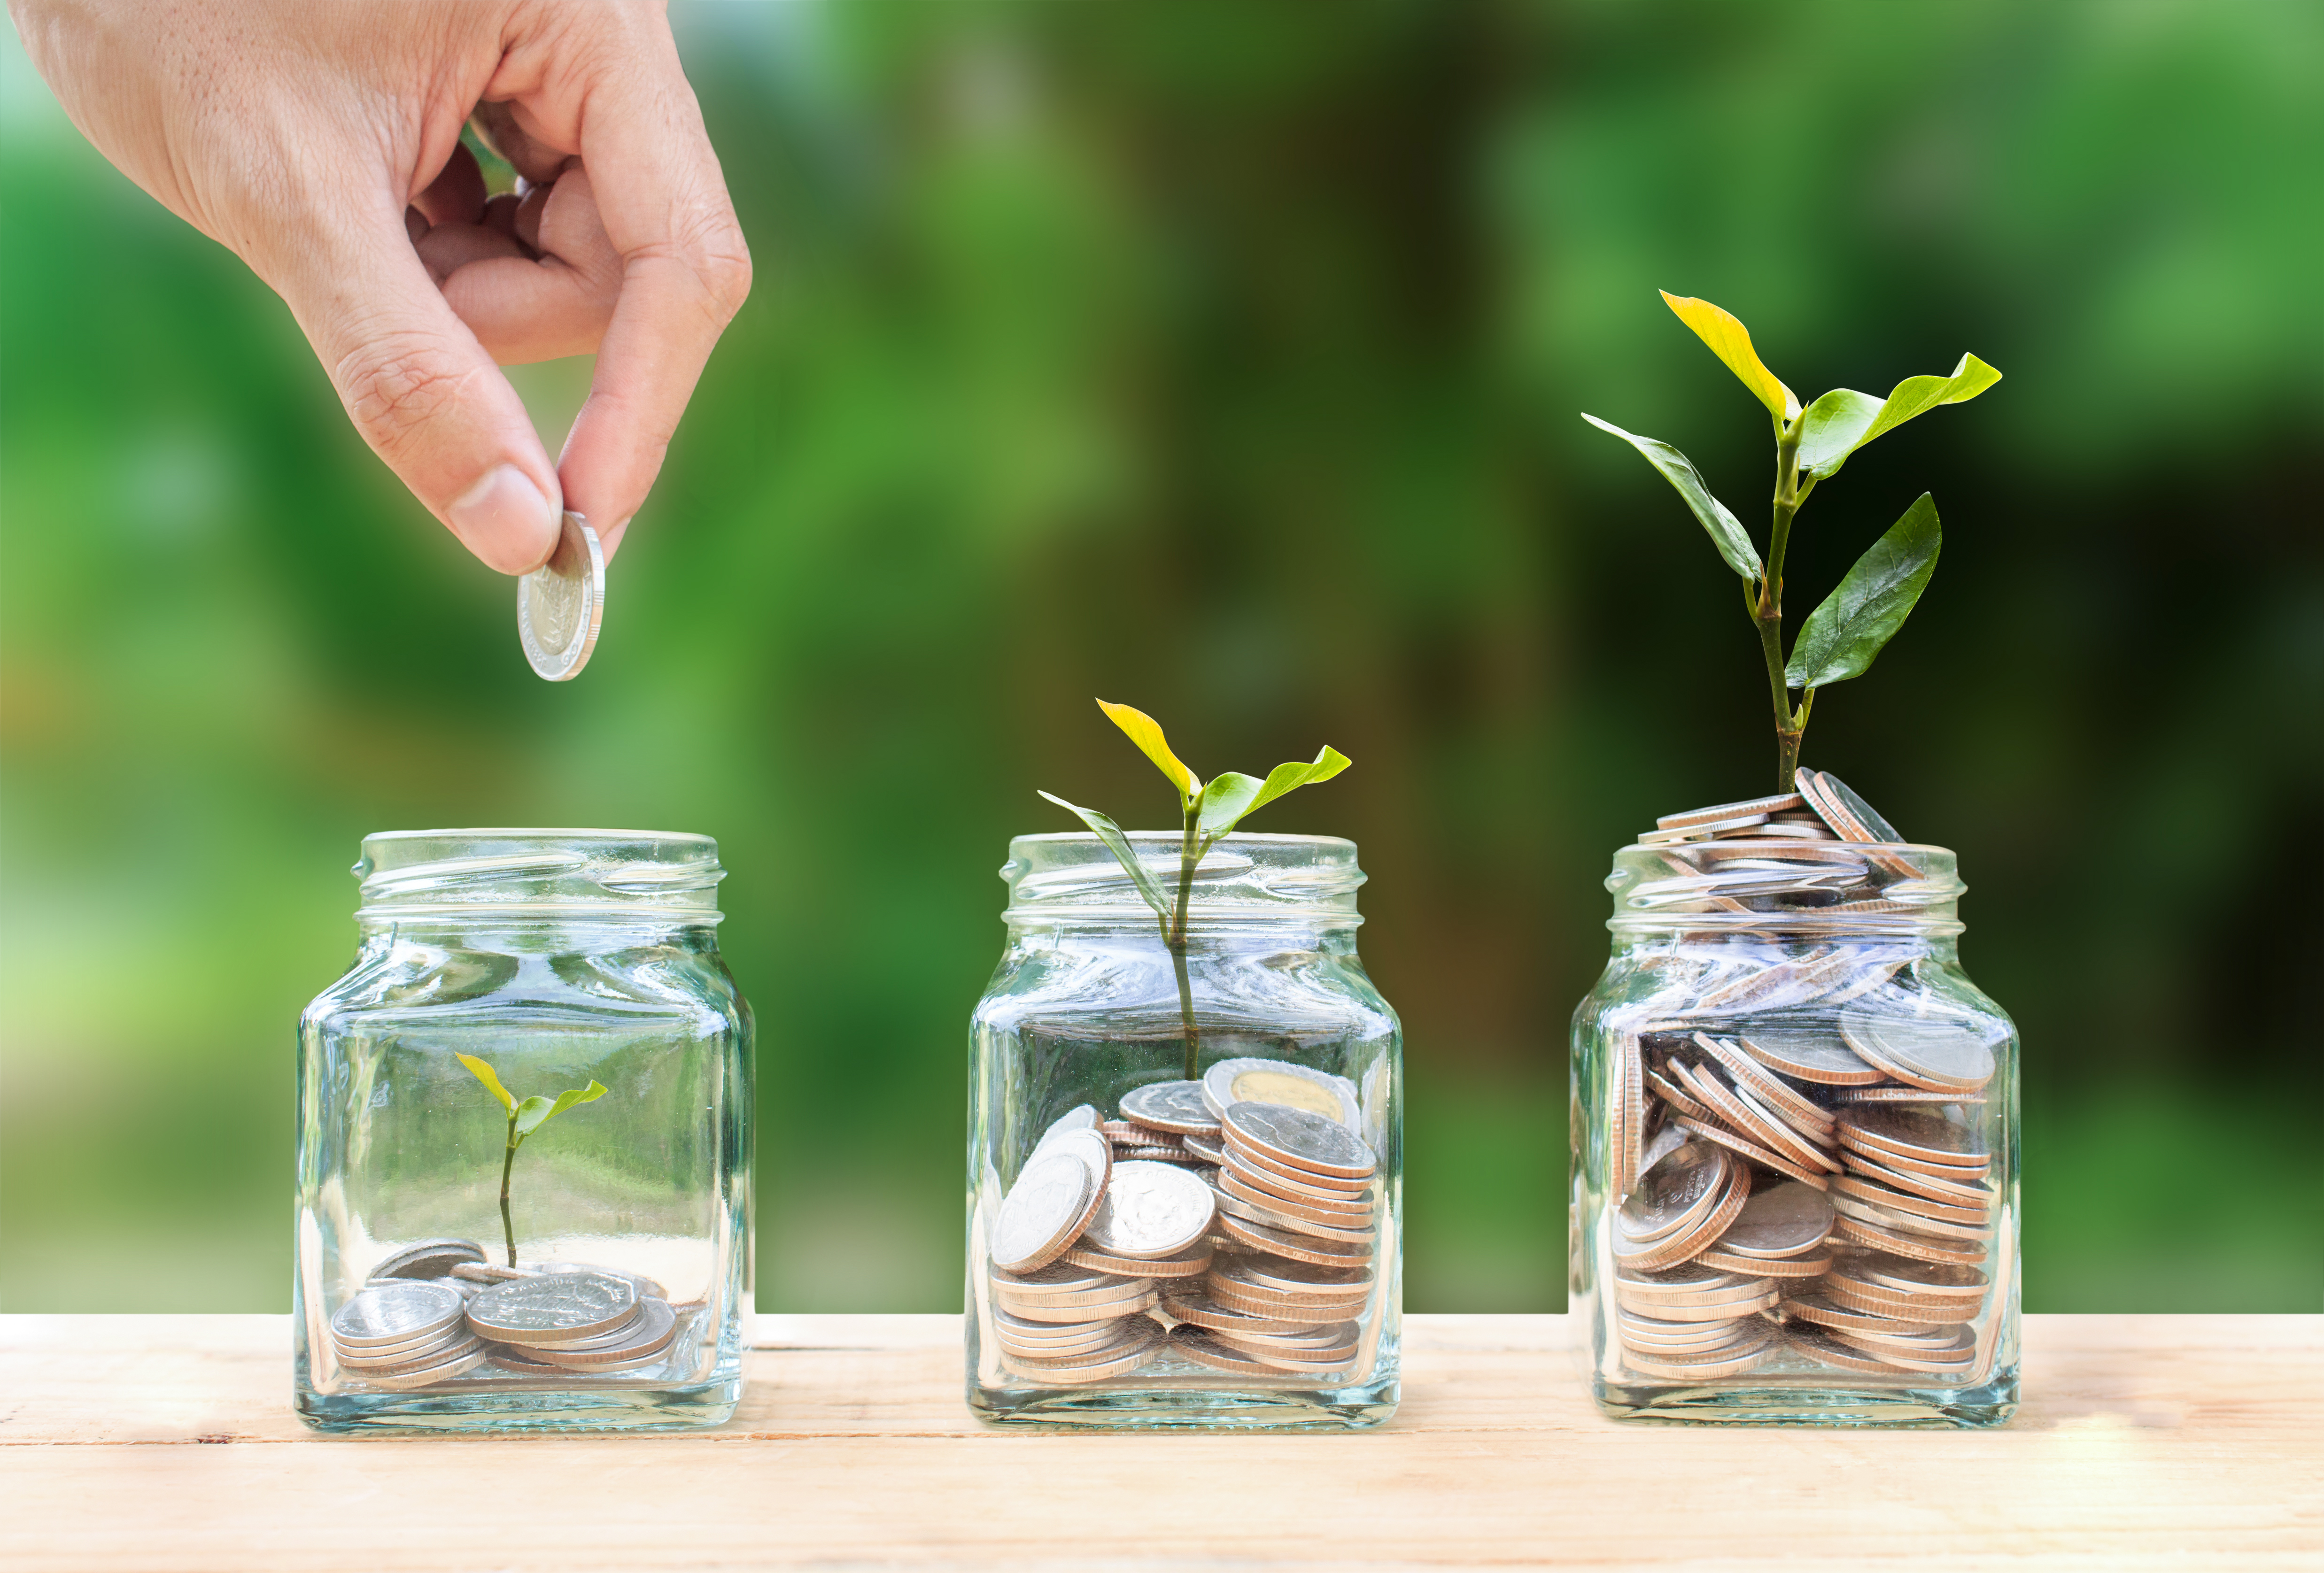 Money savings, investment, making money for future, financial wealth management concept. A man hand holding coin over stacked coins in glass jar and growing tree plant depicts Fund growth and wealth.